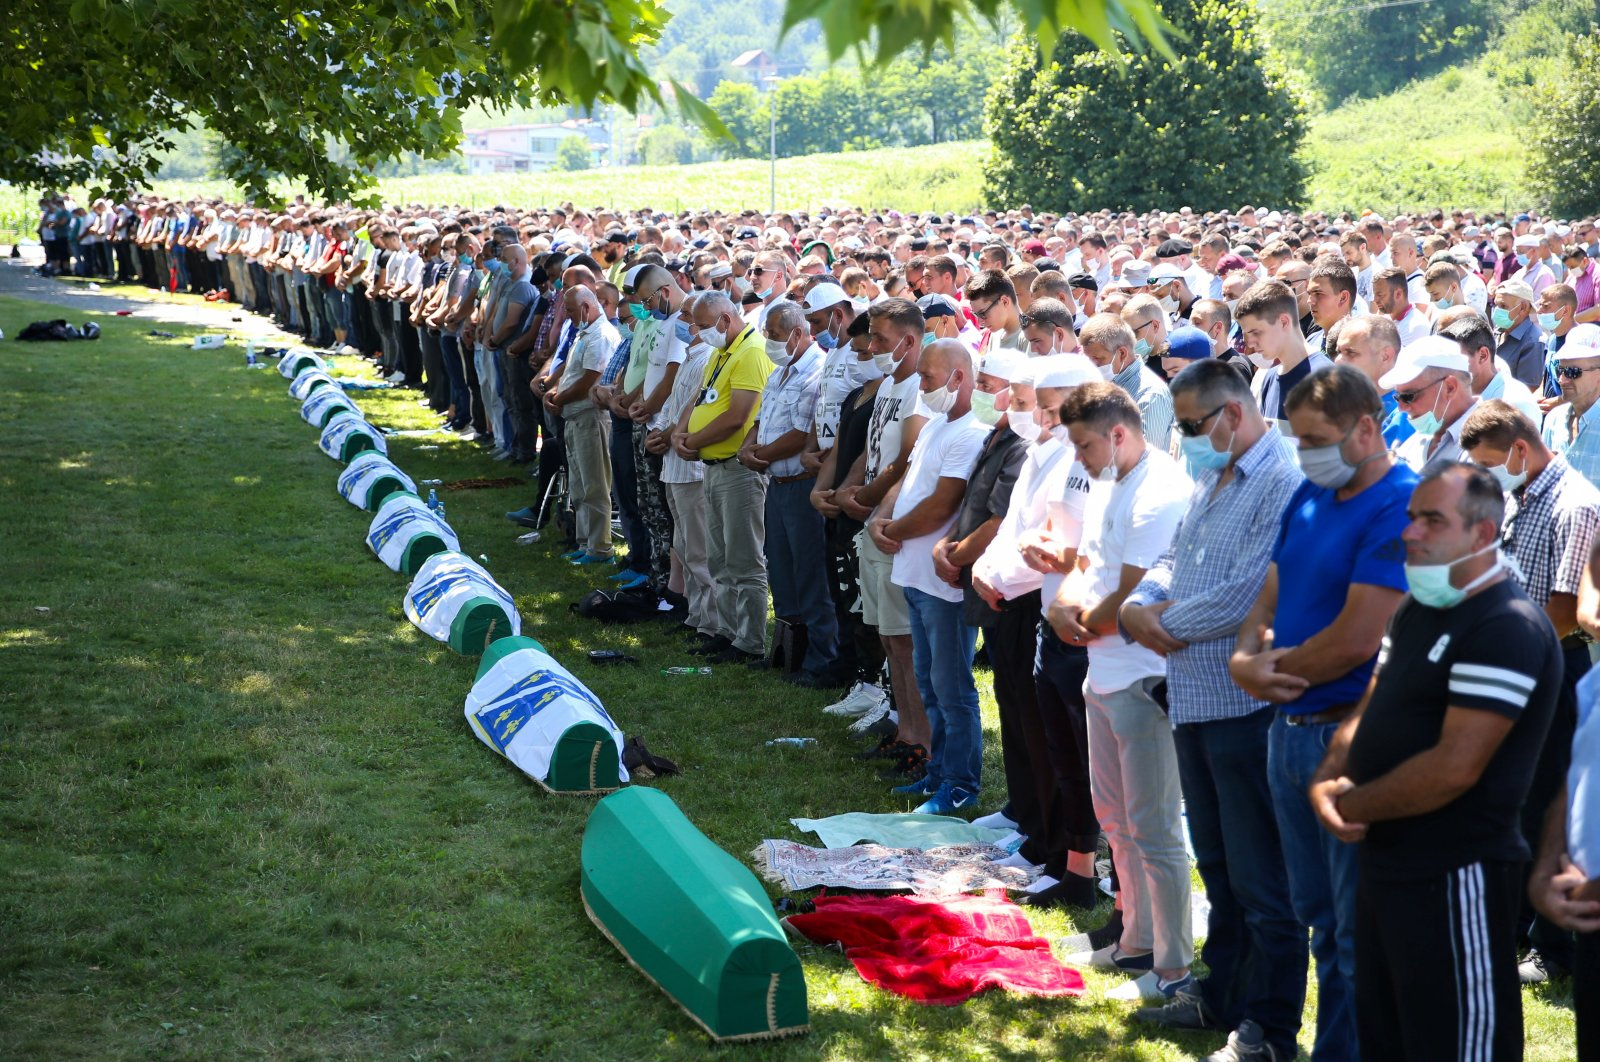 People pray near coffins at a graveyard during a mass funeral in Potocari near Srebrenica, Bosnia and Herzegovina on July 11, 2020. (Reuters Photo)